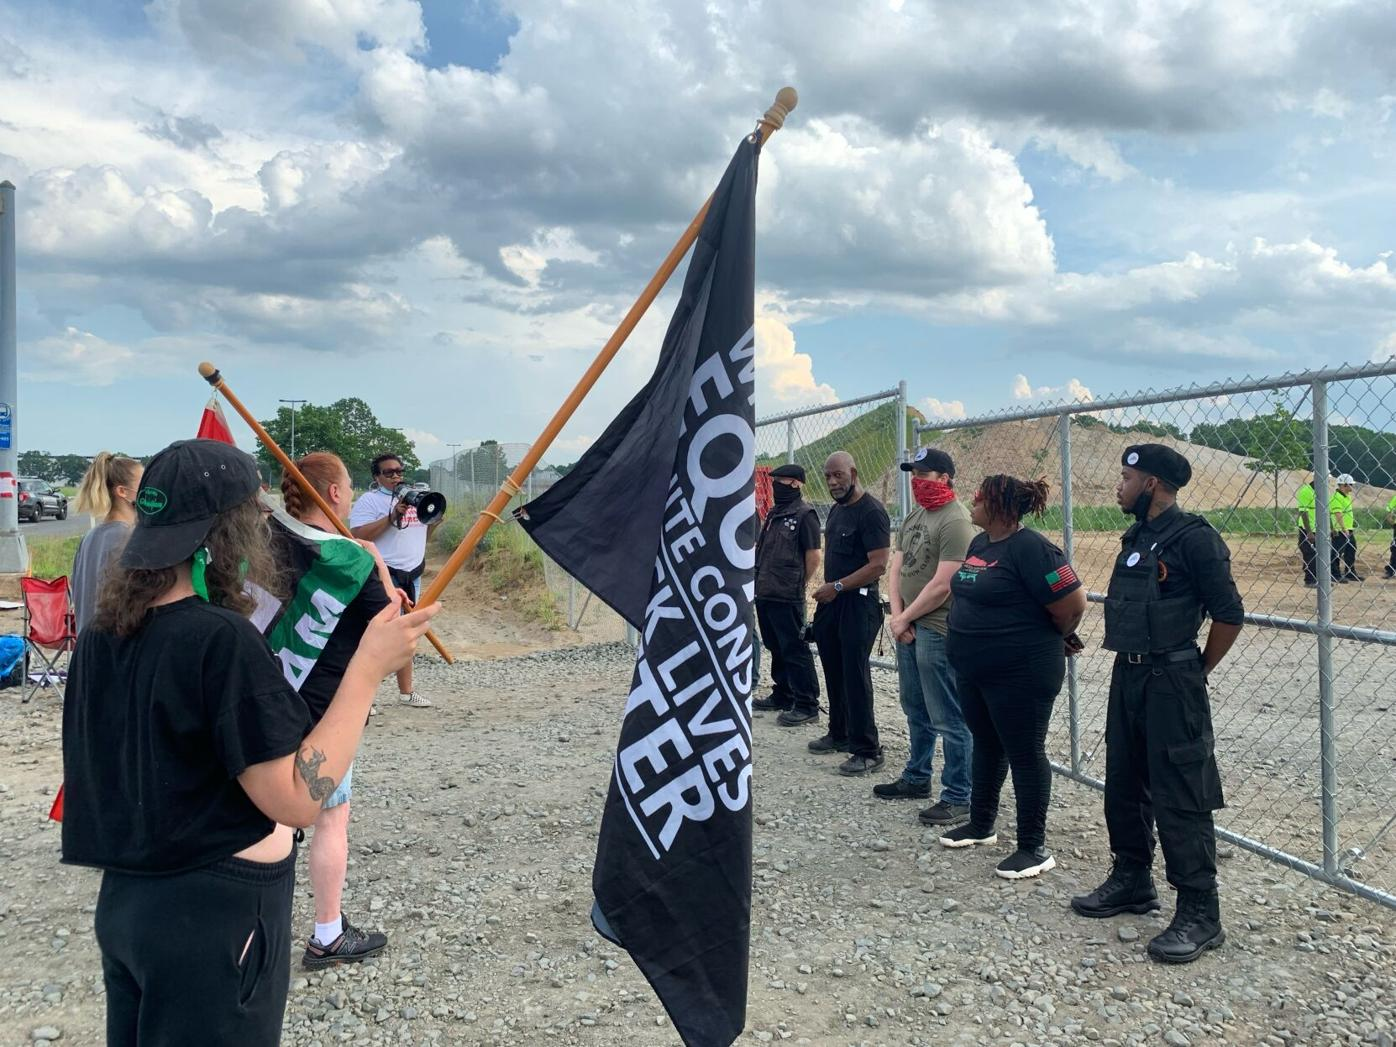 Protest at Windsor Amazon site